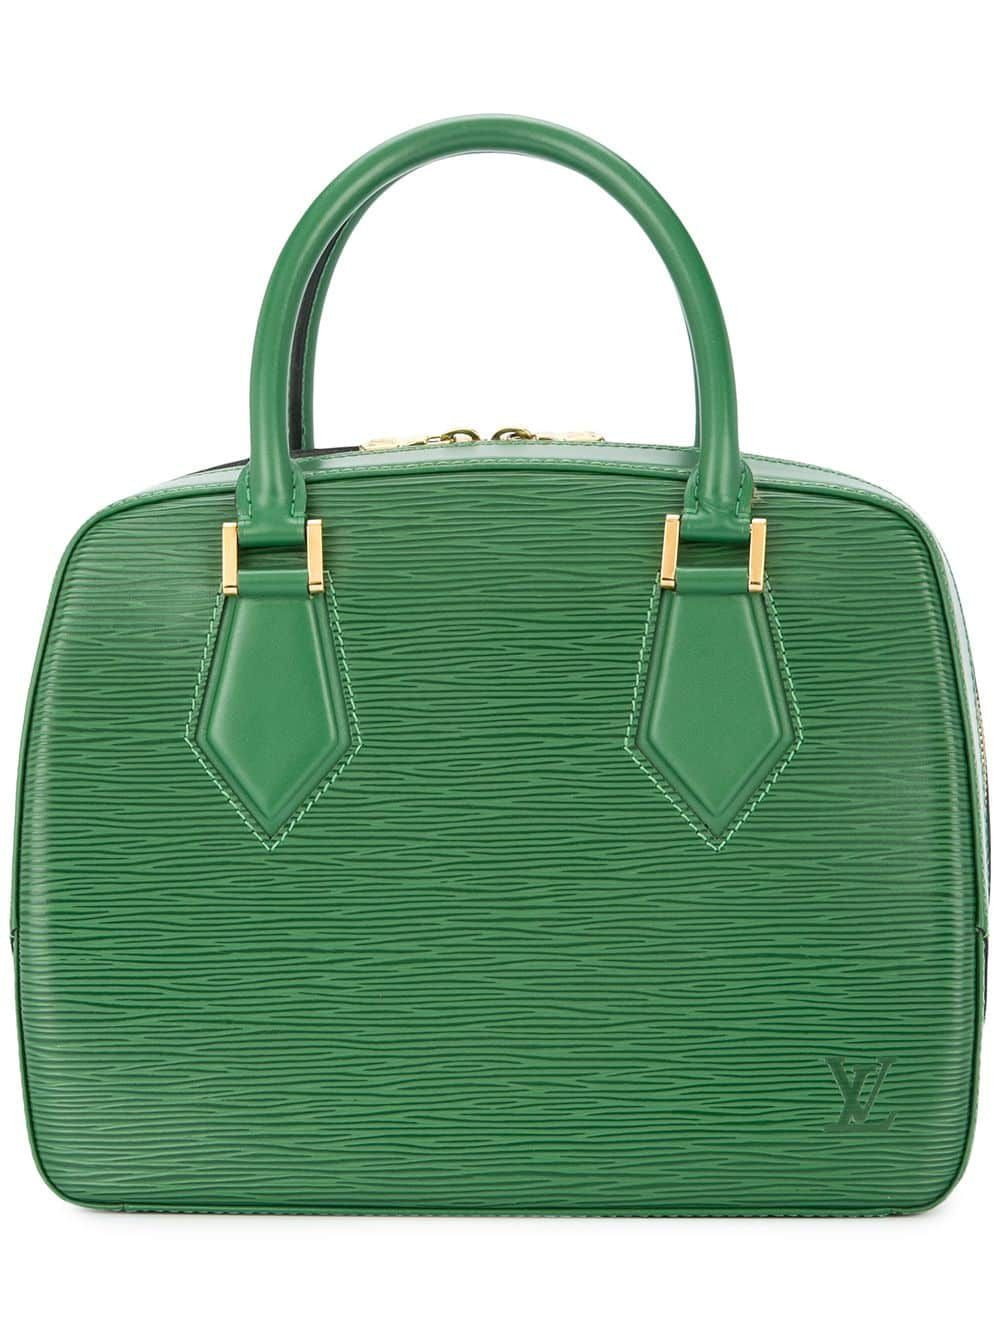 fb83d34b LOUIS VUITTON PRE-OWNED Sablons handbag - Green in 2019 | Products ...